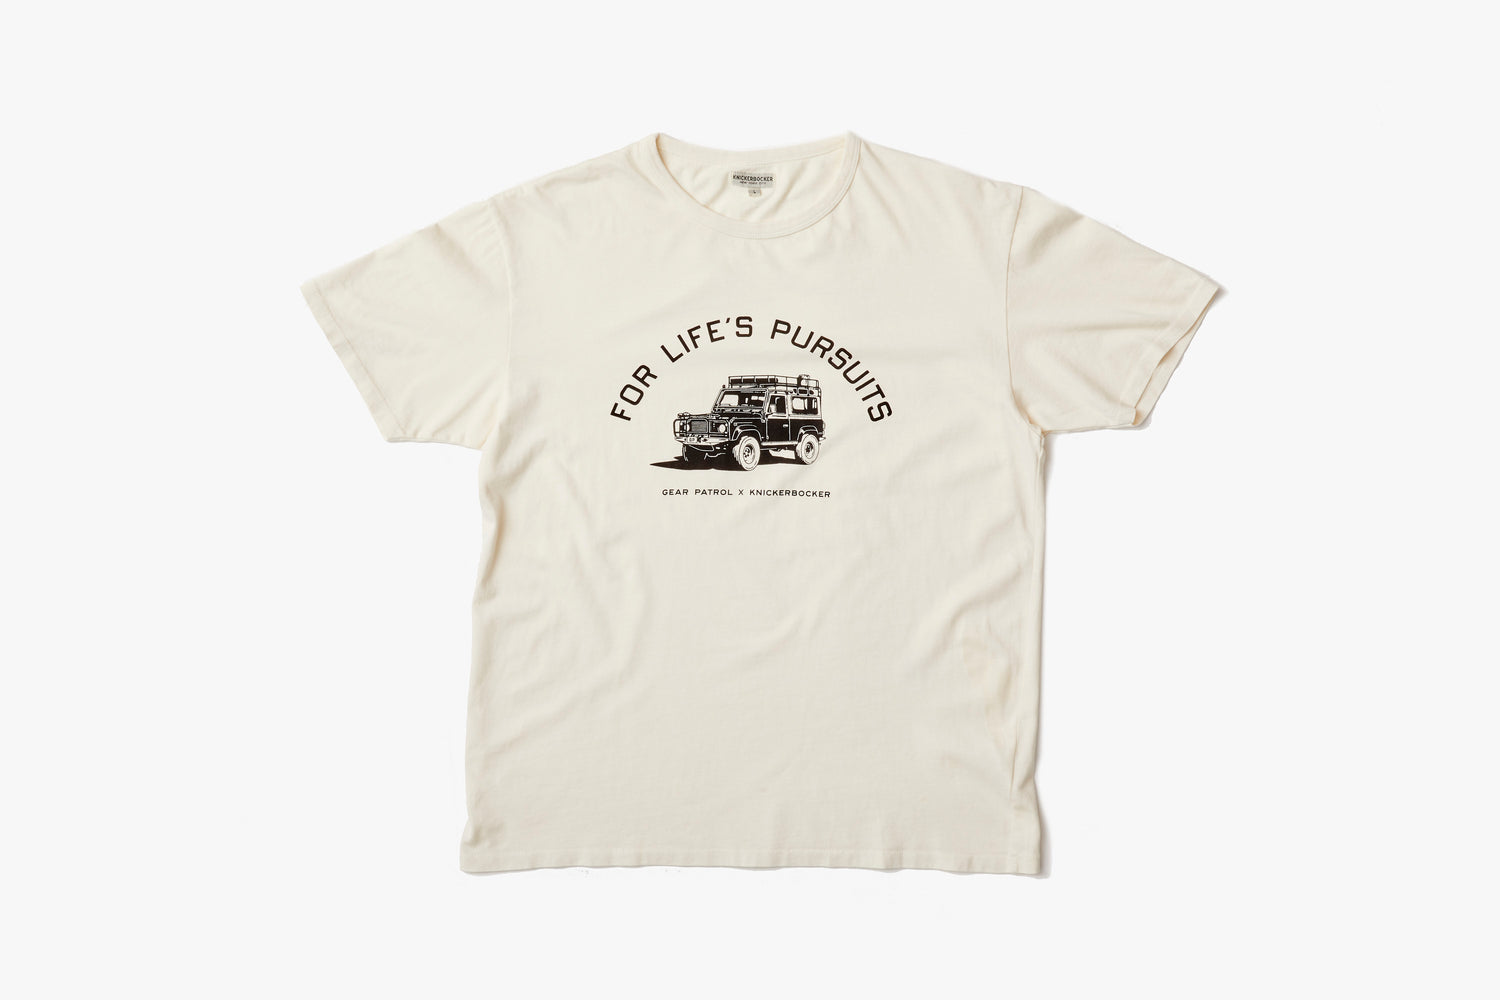 "Knickerbocker x Gear Patrol Overland T-Shirt - image of an off-white tee shirt showing an illustration of a Land Rover with ""For Life's Pursuits"" written above it"